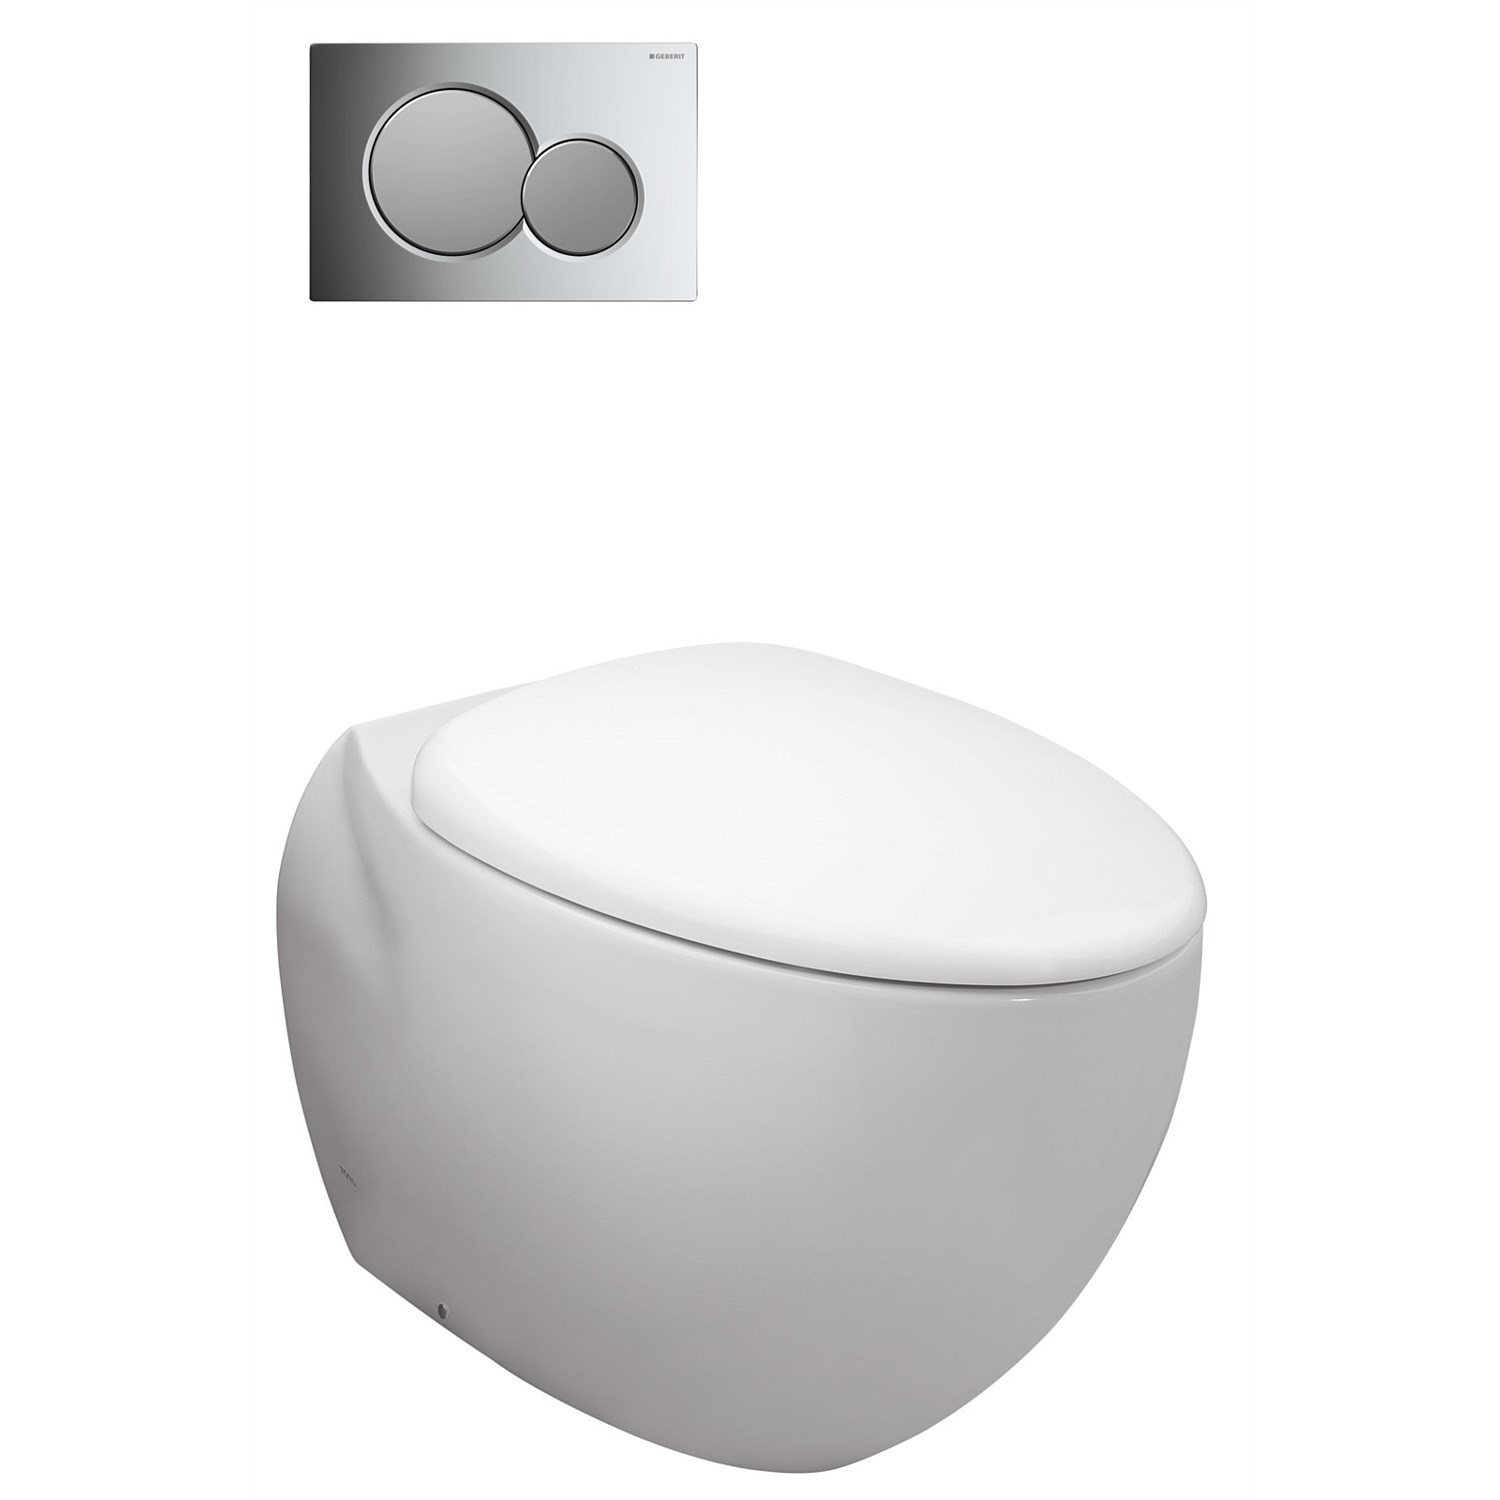 Toilet Suites | Plumbing World - Toto Le Muse Wall-Faced Toilet Suite